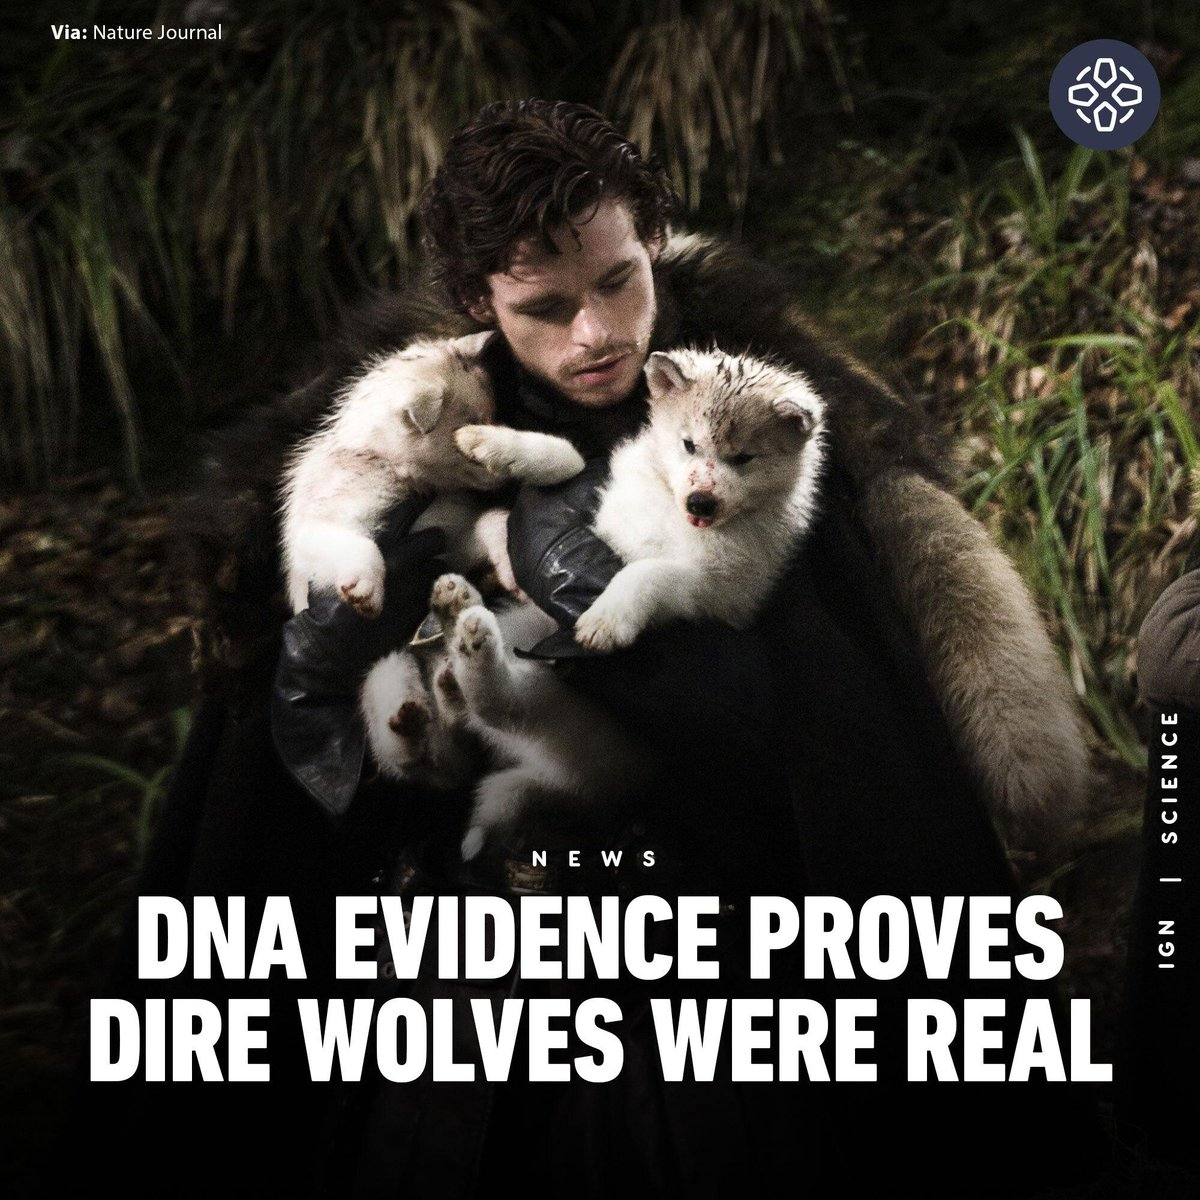 Dire Wolves existed in the Pleistocene Era of America's past. However, recent gene sequencing published by the Nature Journal reveals they have no direct relation to the modern Grey Wolf found in America. https://t.co/c2UYqXMdtq